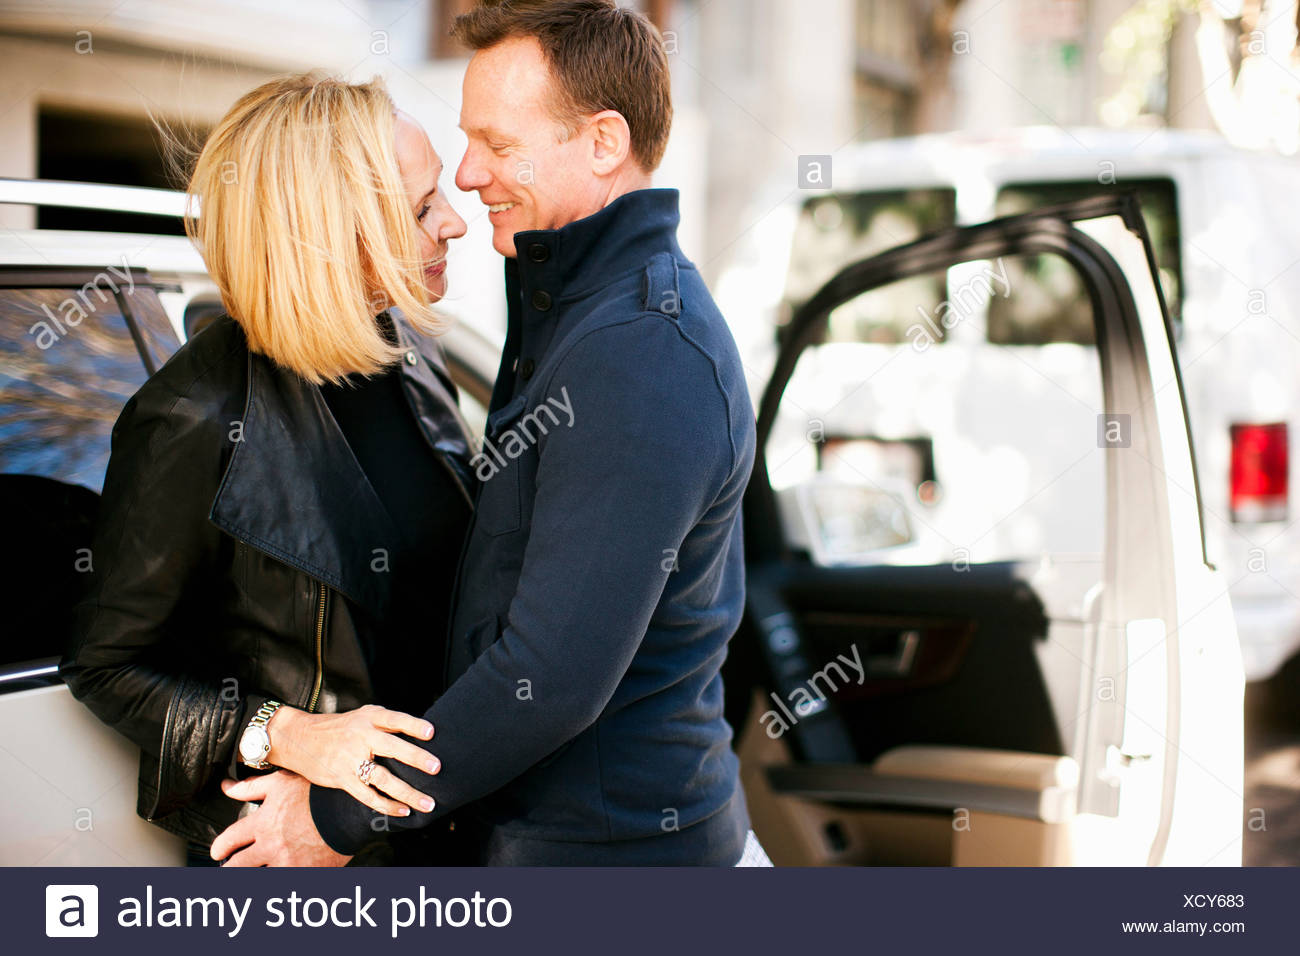 Man and woman happy to meet again - Stock Image